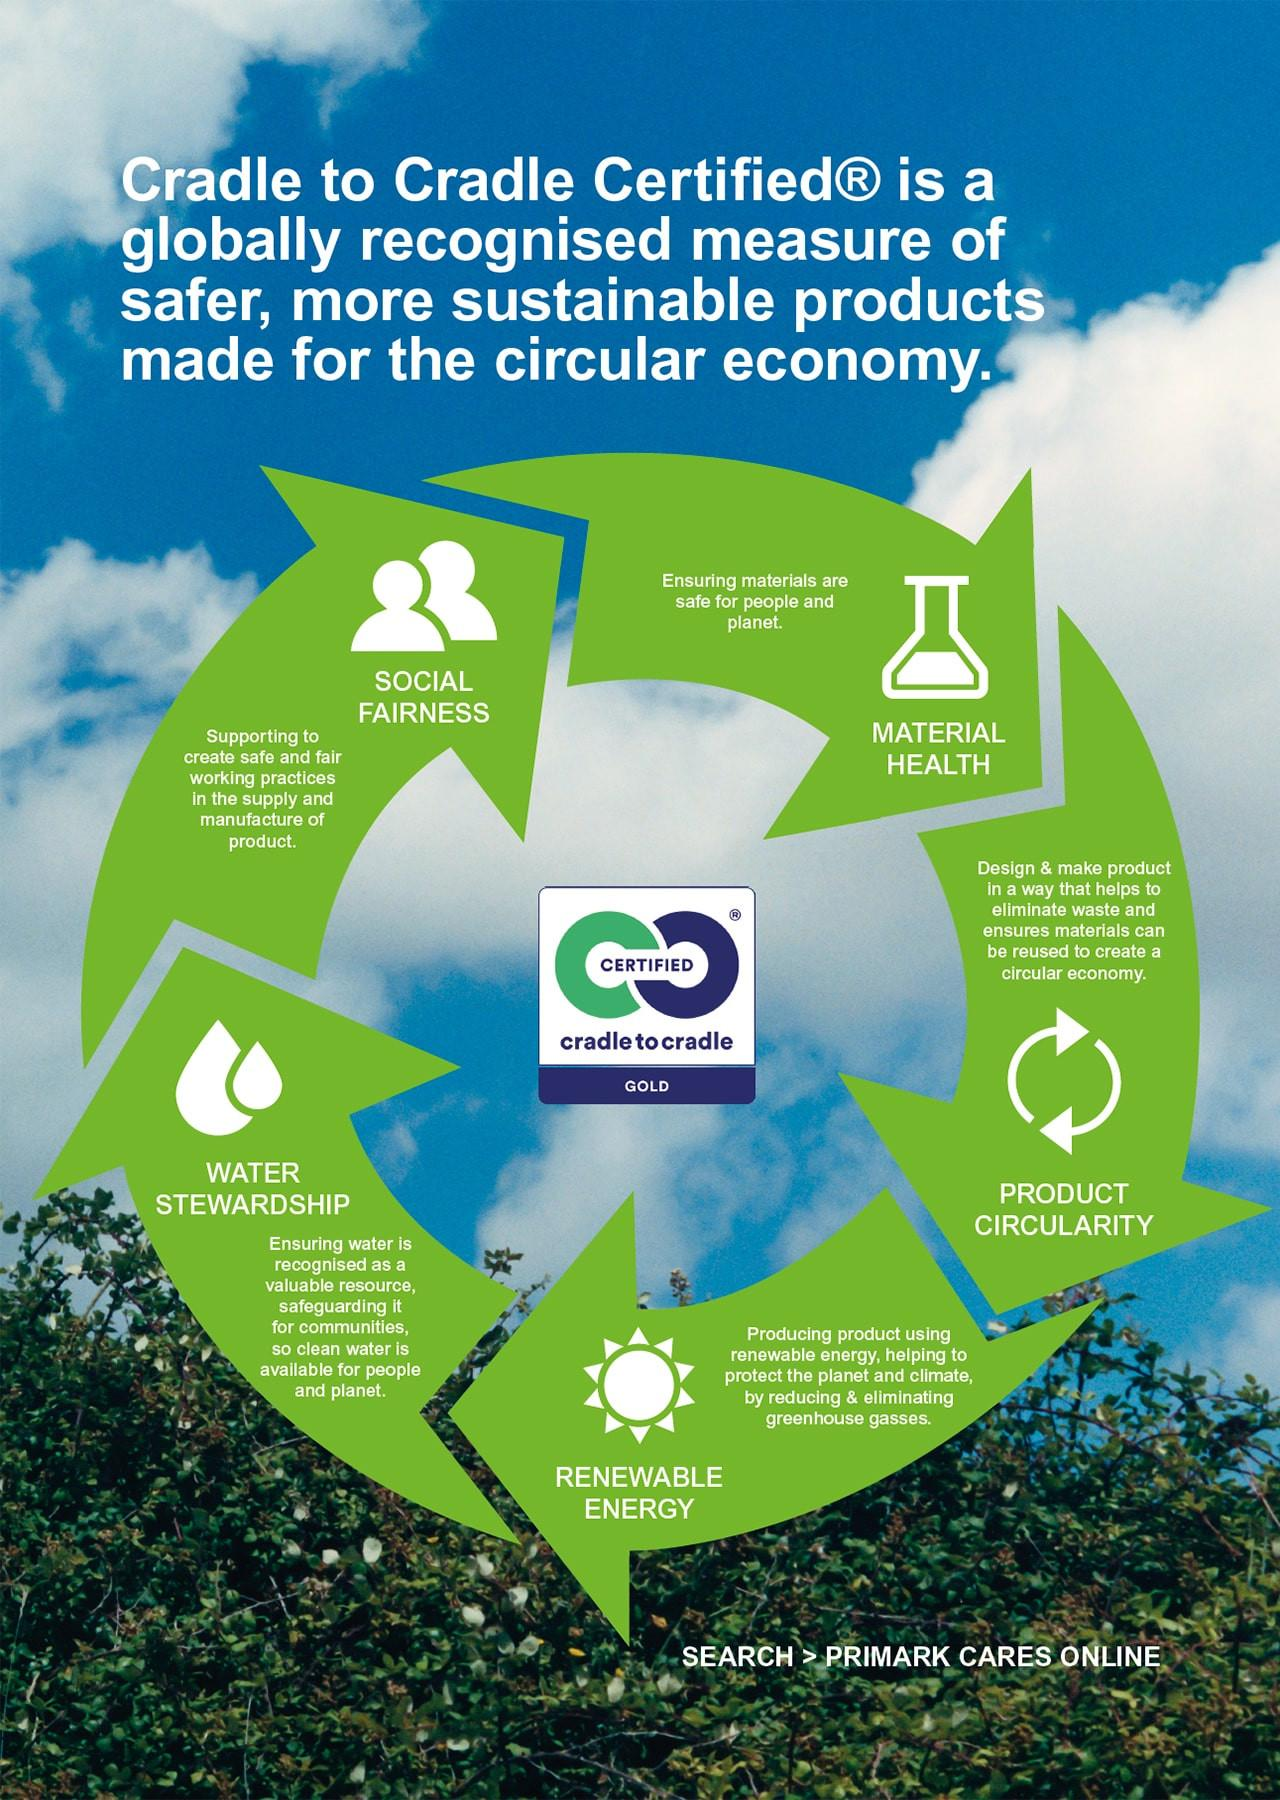 Cradle to Cradle Certified is a globally recognised measure of safer, more sustainable products made for the circular economy